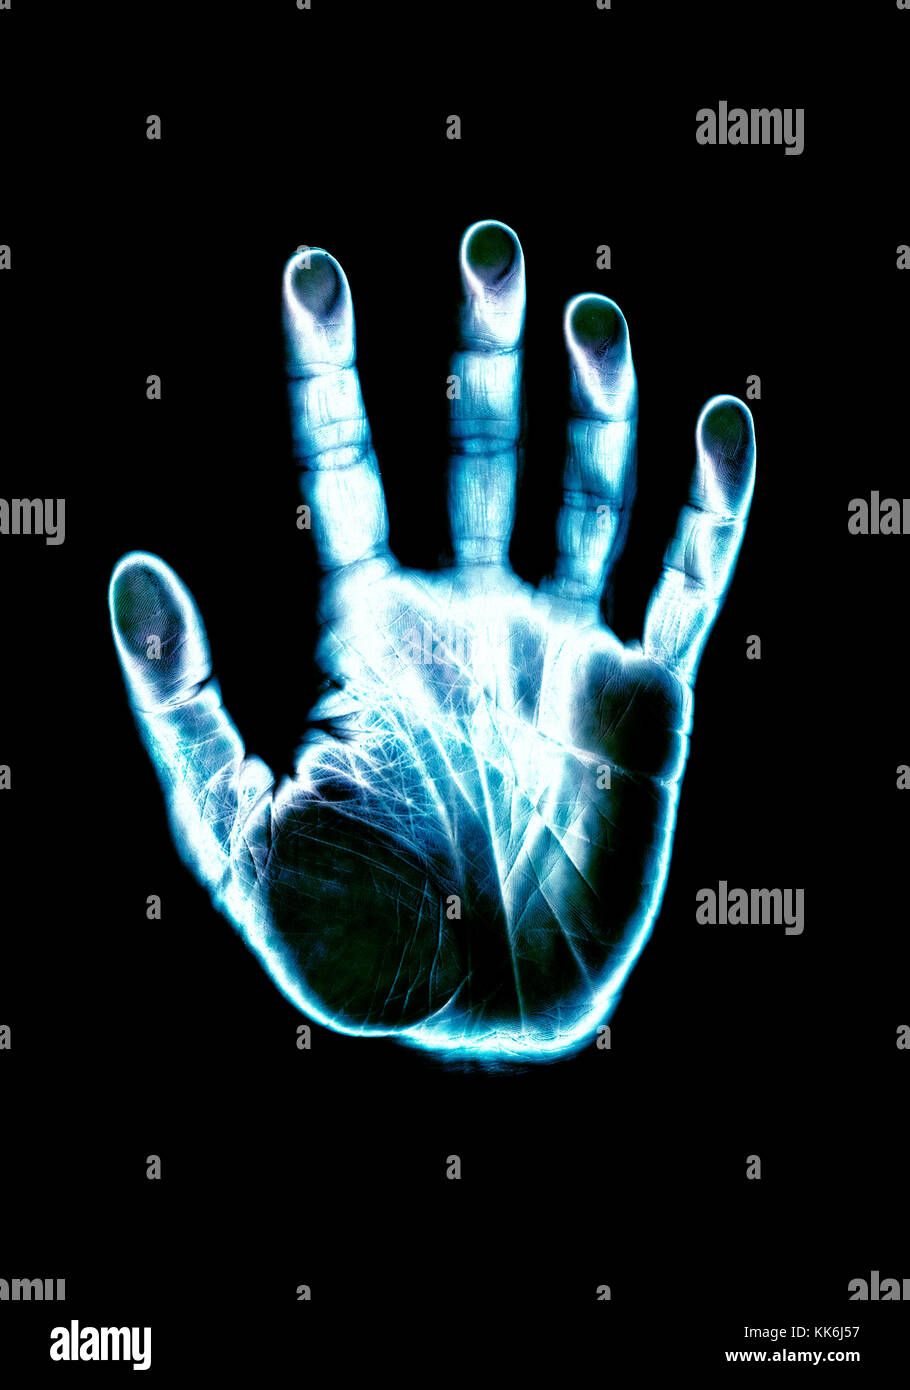 hand scan inverted colors and glowing - Stock Image